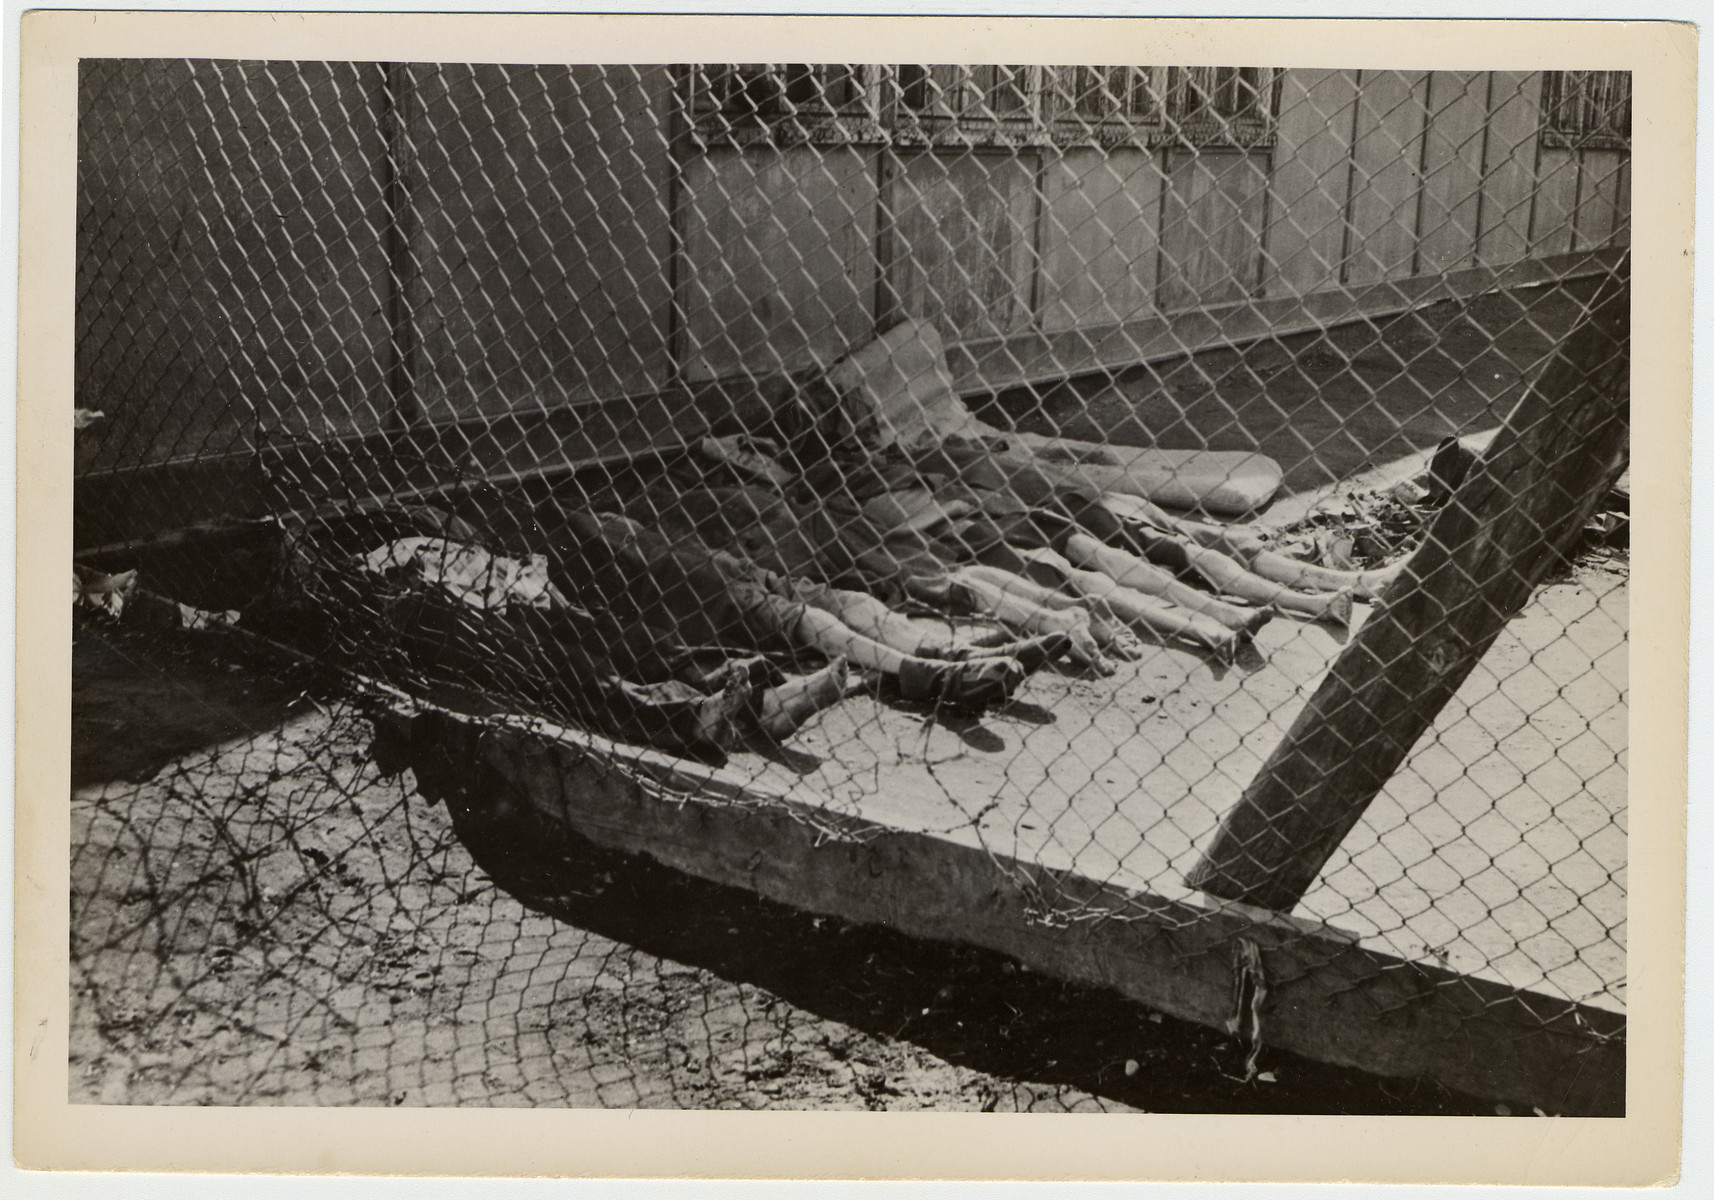 """Remains of deceased prisoners found in the barracks of the Dachau concentration camp after liberation.  Original caption reads, """"The dead of the Dachau concentration camp lie in the back of the prison barracks. Each barrack has their little pile of dead bodies. Inmates claim that 14,000 prisoners have died in the past few months."""""""